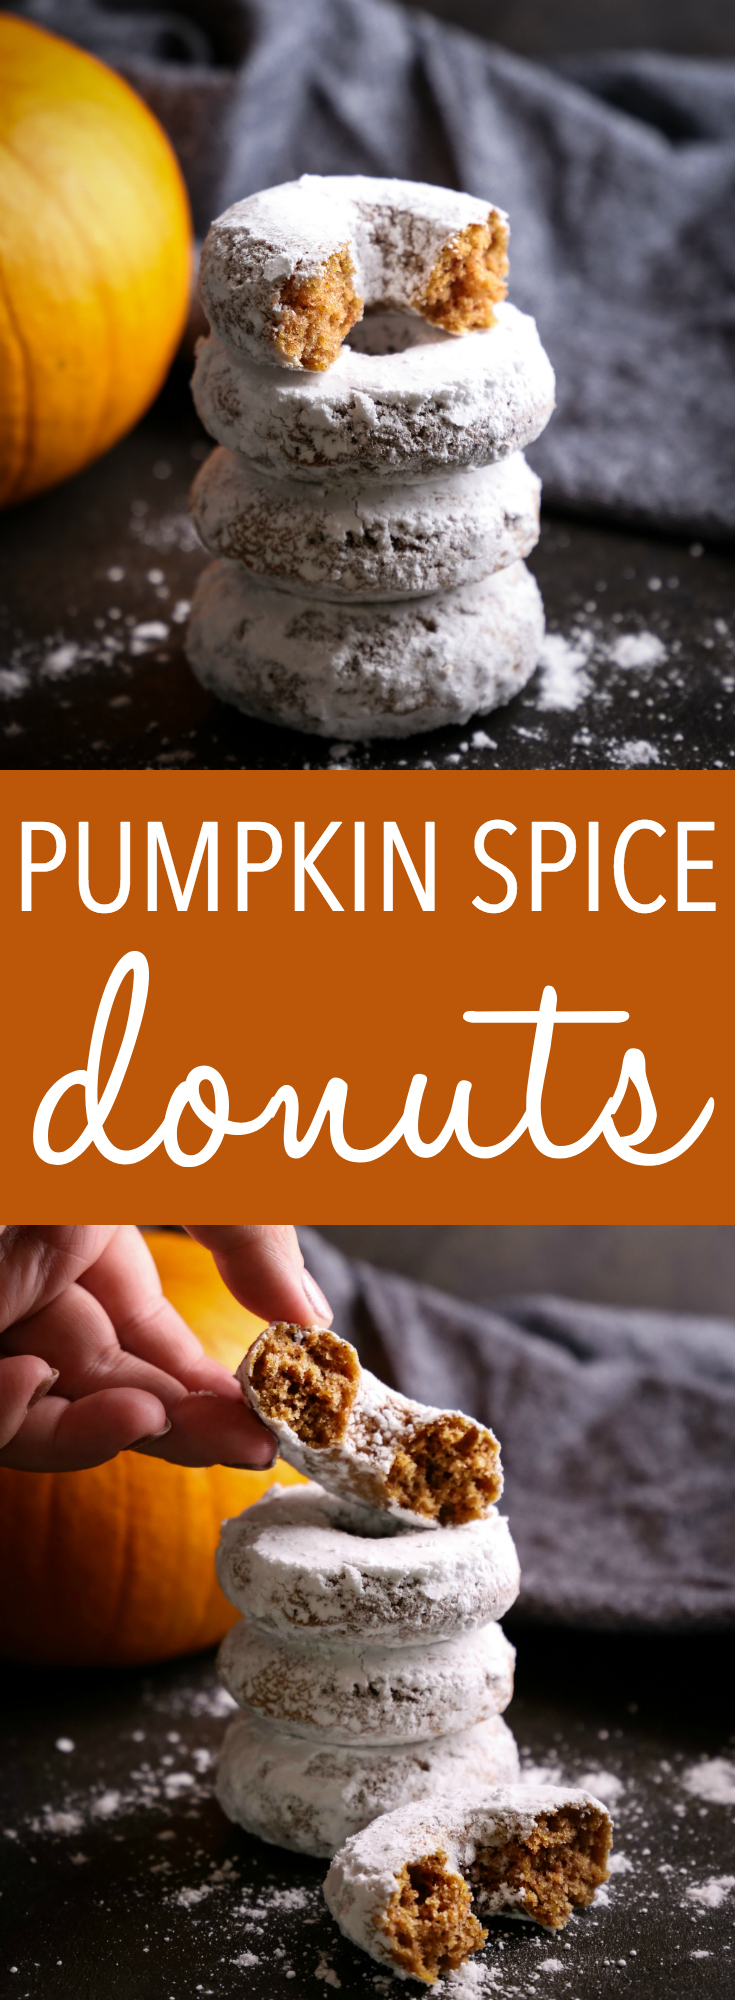 These Pumpkin Spice Baked Donuts are the perfect easy-to-make fall dessert for donut lovers, made with real pumpkin and dipped in powdered sugar! Recipe from thebusybaker.ca! #donuts #pumpkin #fall #dessert #baking #powderedsugardonuts #treat #recipe #easytomake #onebowl #foodblog #autumn #pumpkinspice